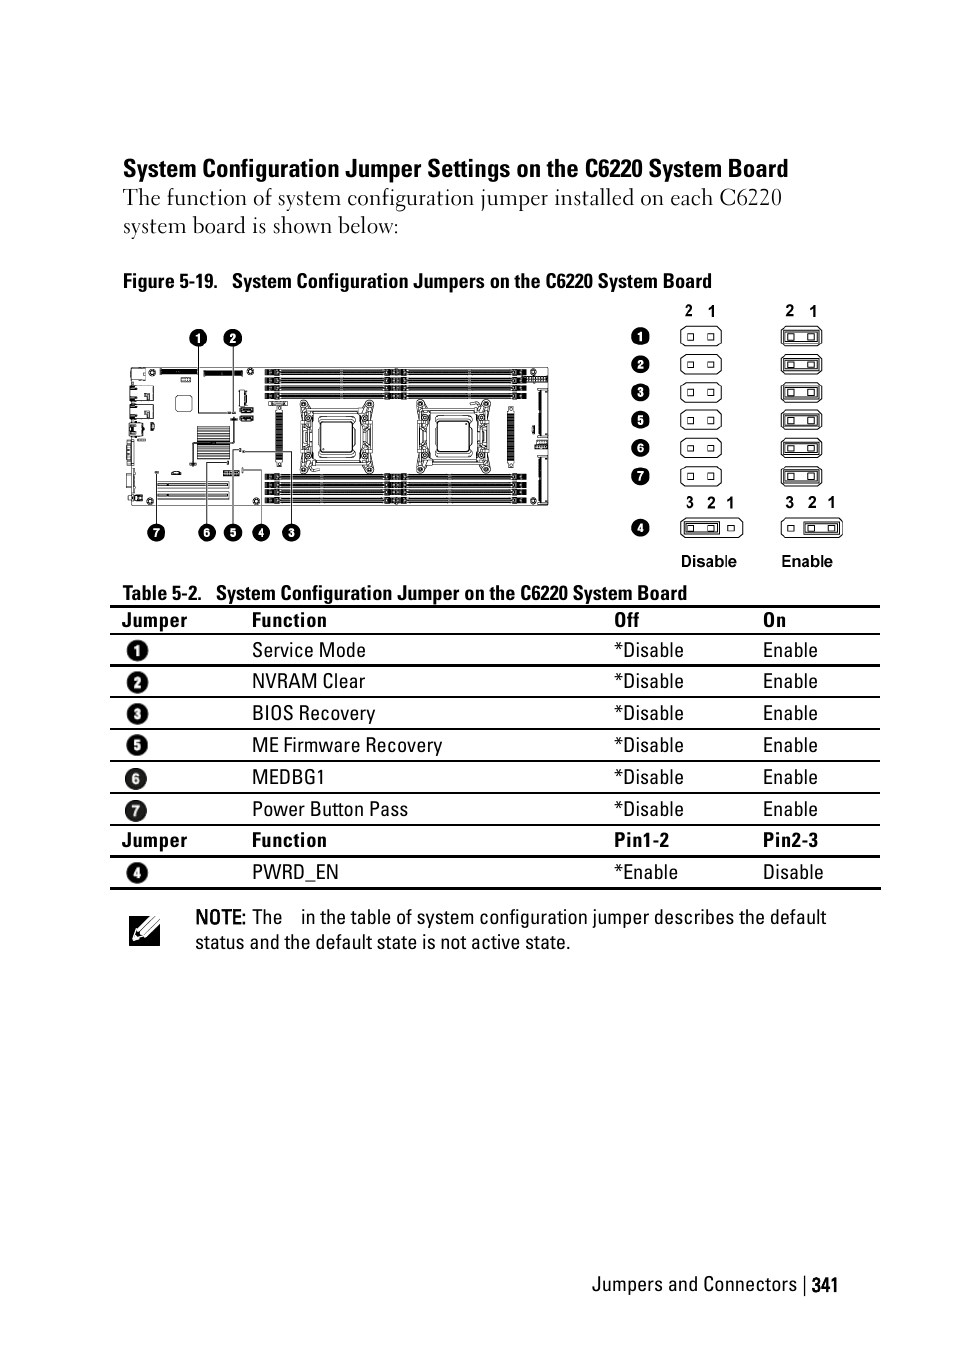 Dell PowerEdge C6220 II User Manual | Page 341 / 349